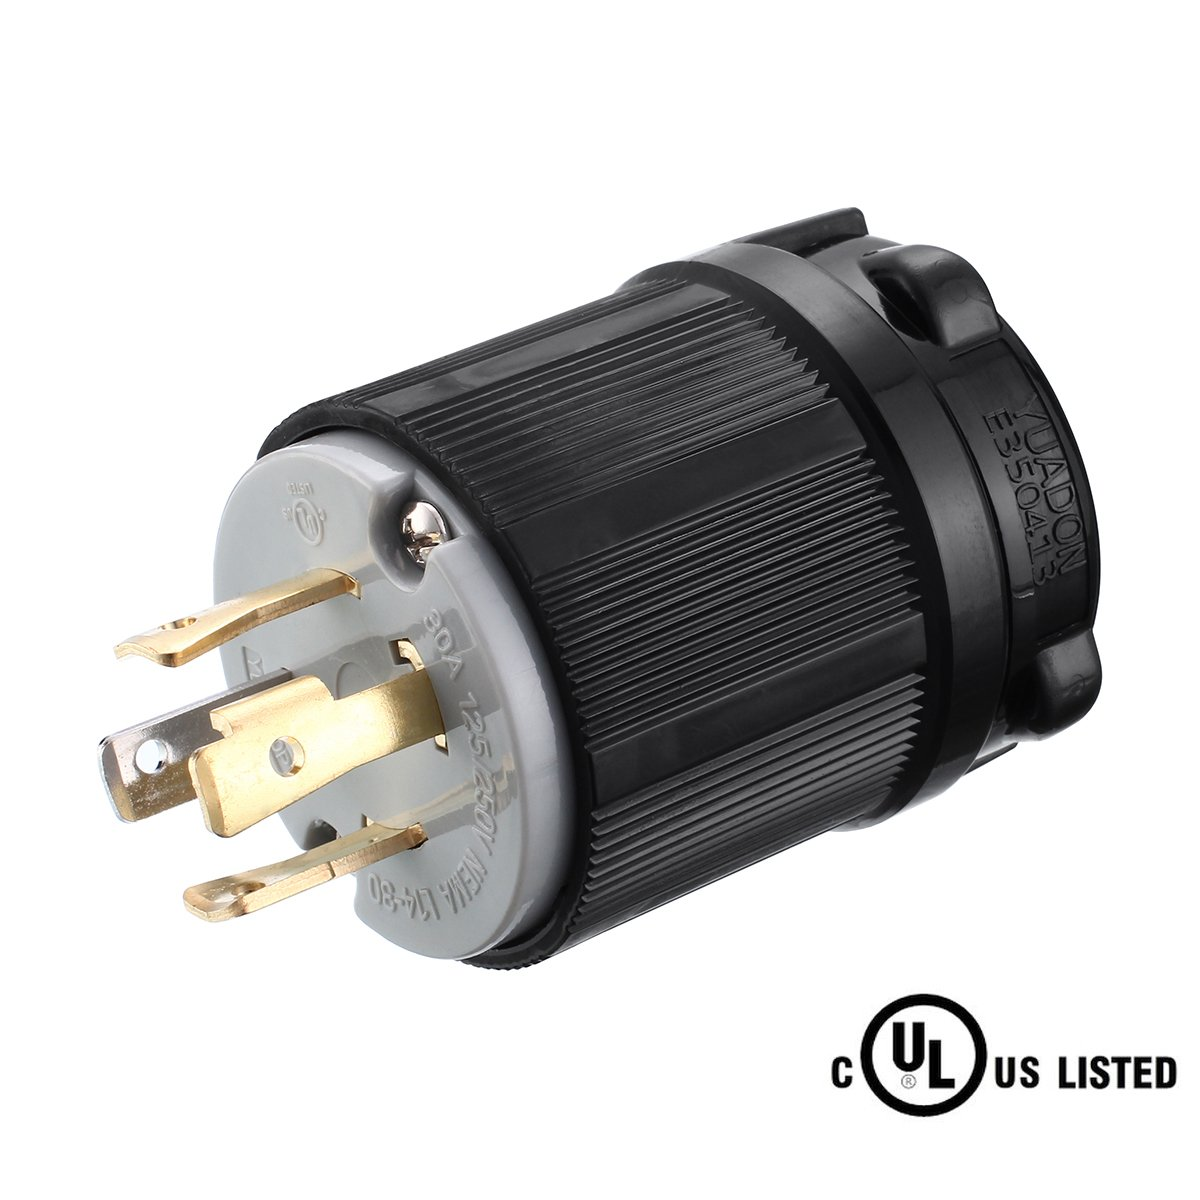 hight resolution of buy miady nema l14 30p generator plug 30 amp 4 prong industrial grade locking male plug up to 7 500w grounding type ul listed in cheap price on